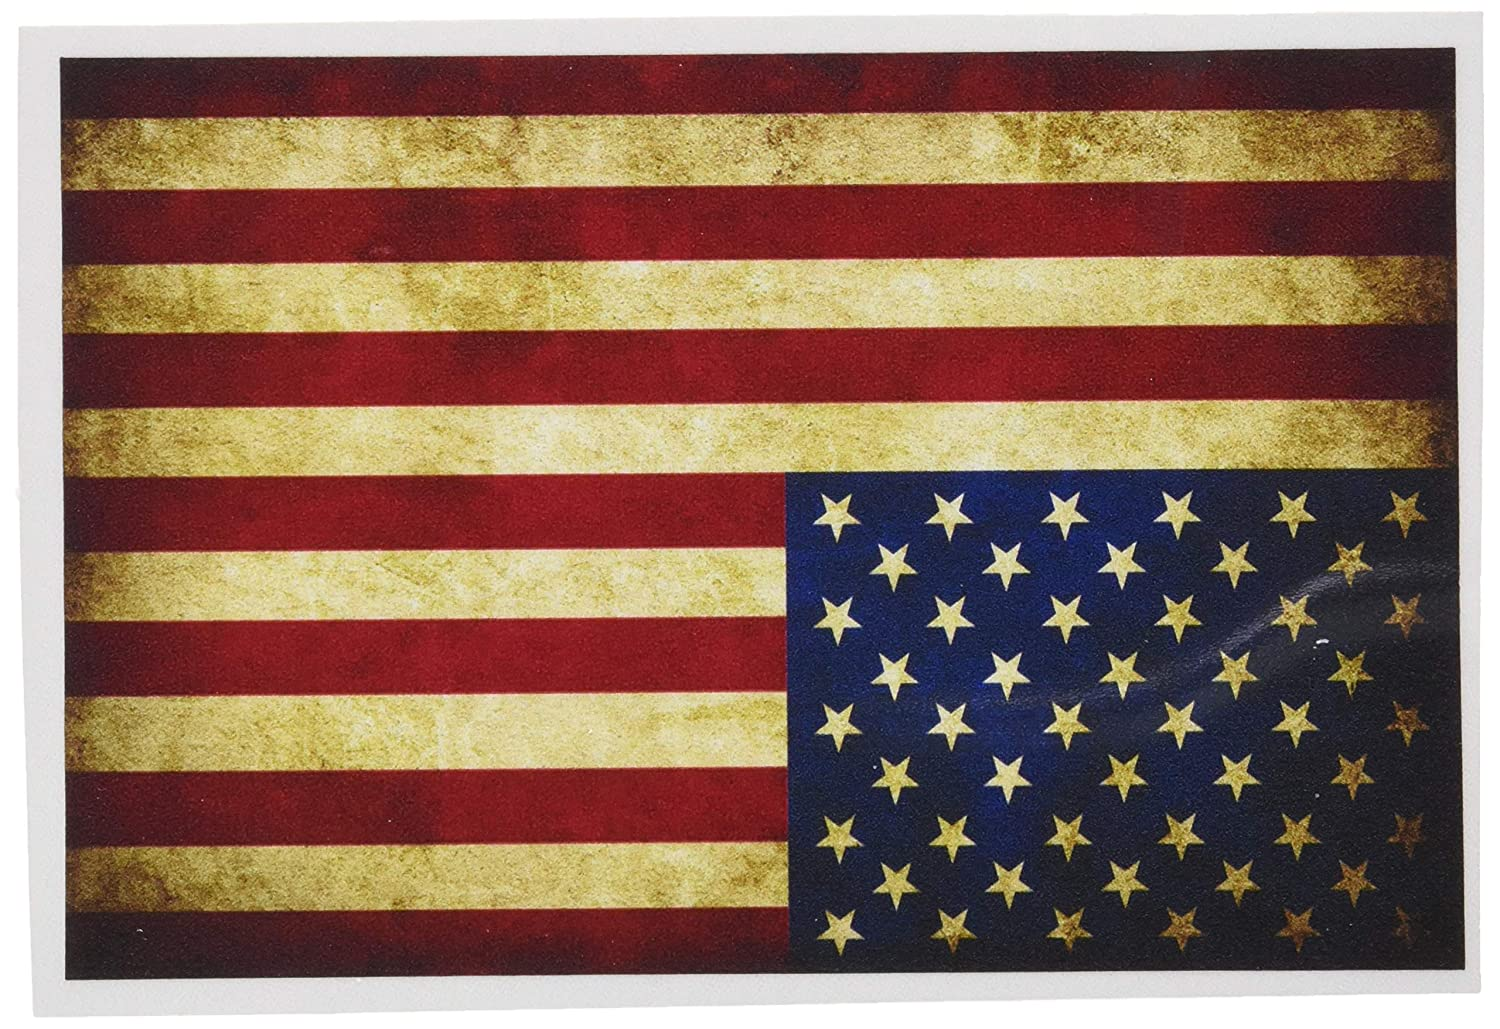 Rustic american flag decal high quality vinyl graphic bumper sticker perfect for your car truck suv rv motorcycle scooter van semi or whatever it